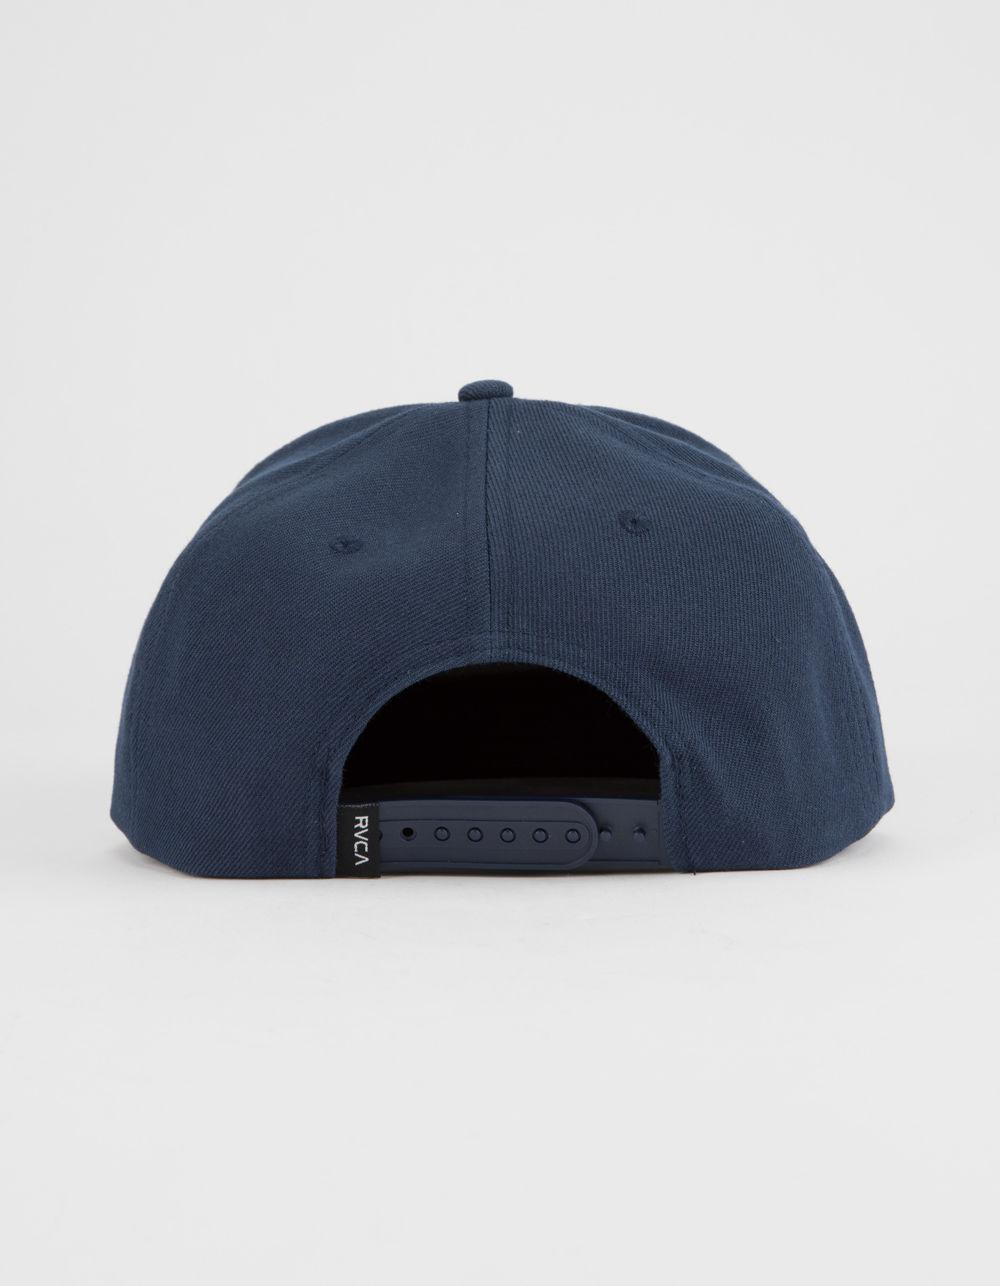 hot sales 6f66d 3cf6e ... good lyst rvca radius navy mens snapback hat in blue for men ab734 2f1ad